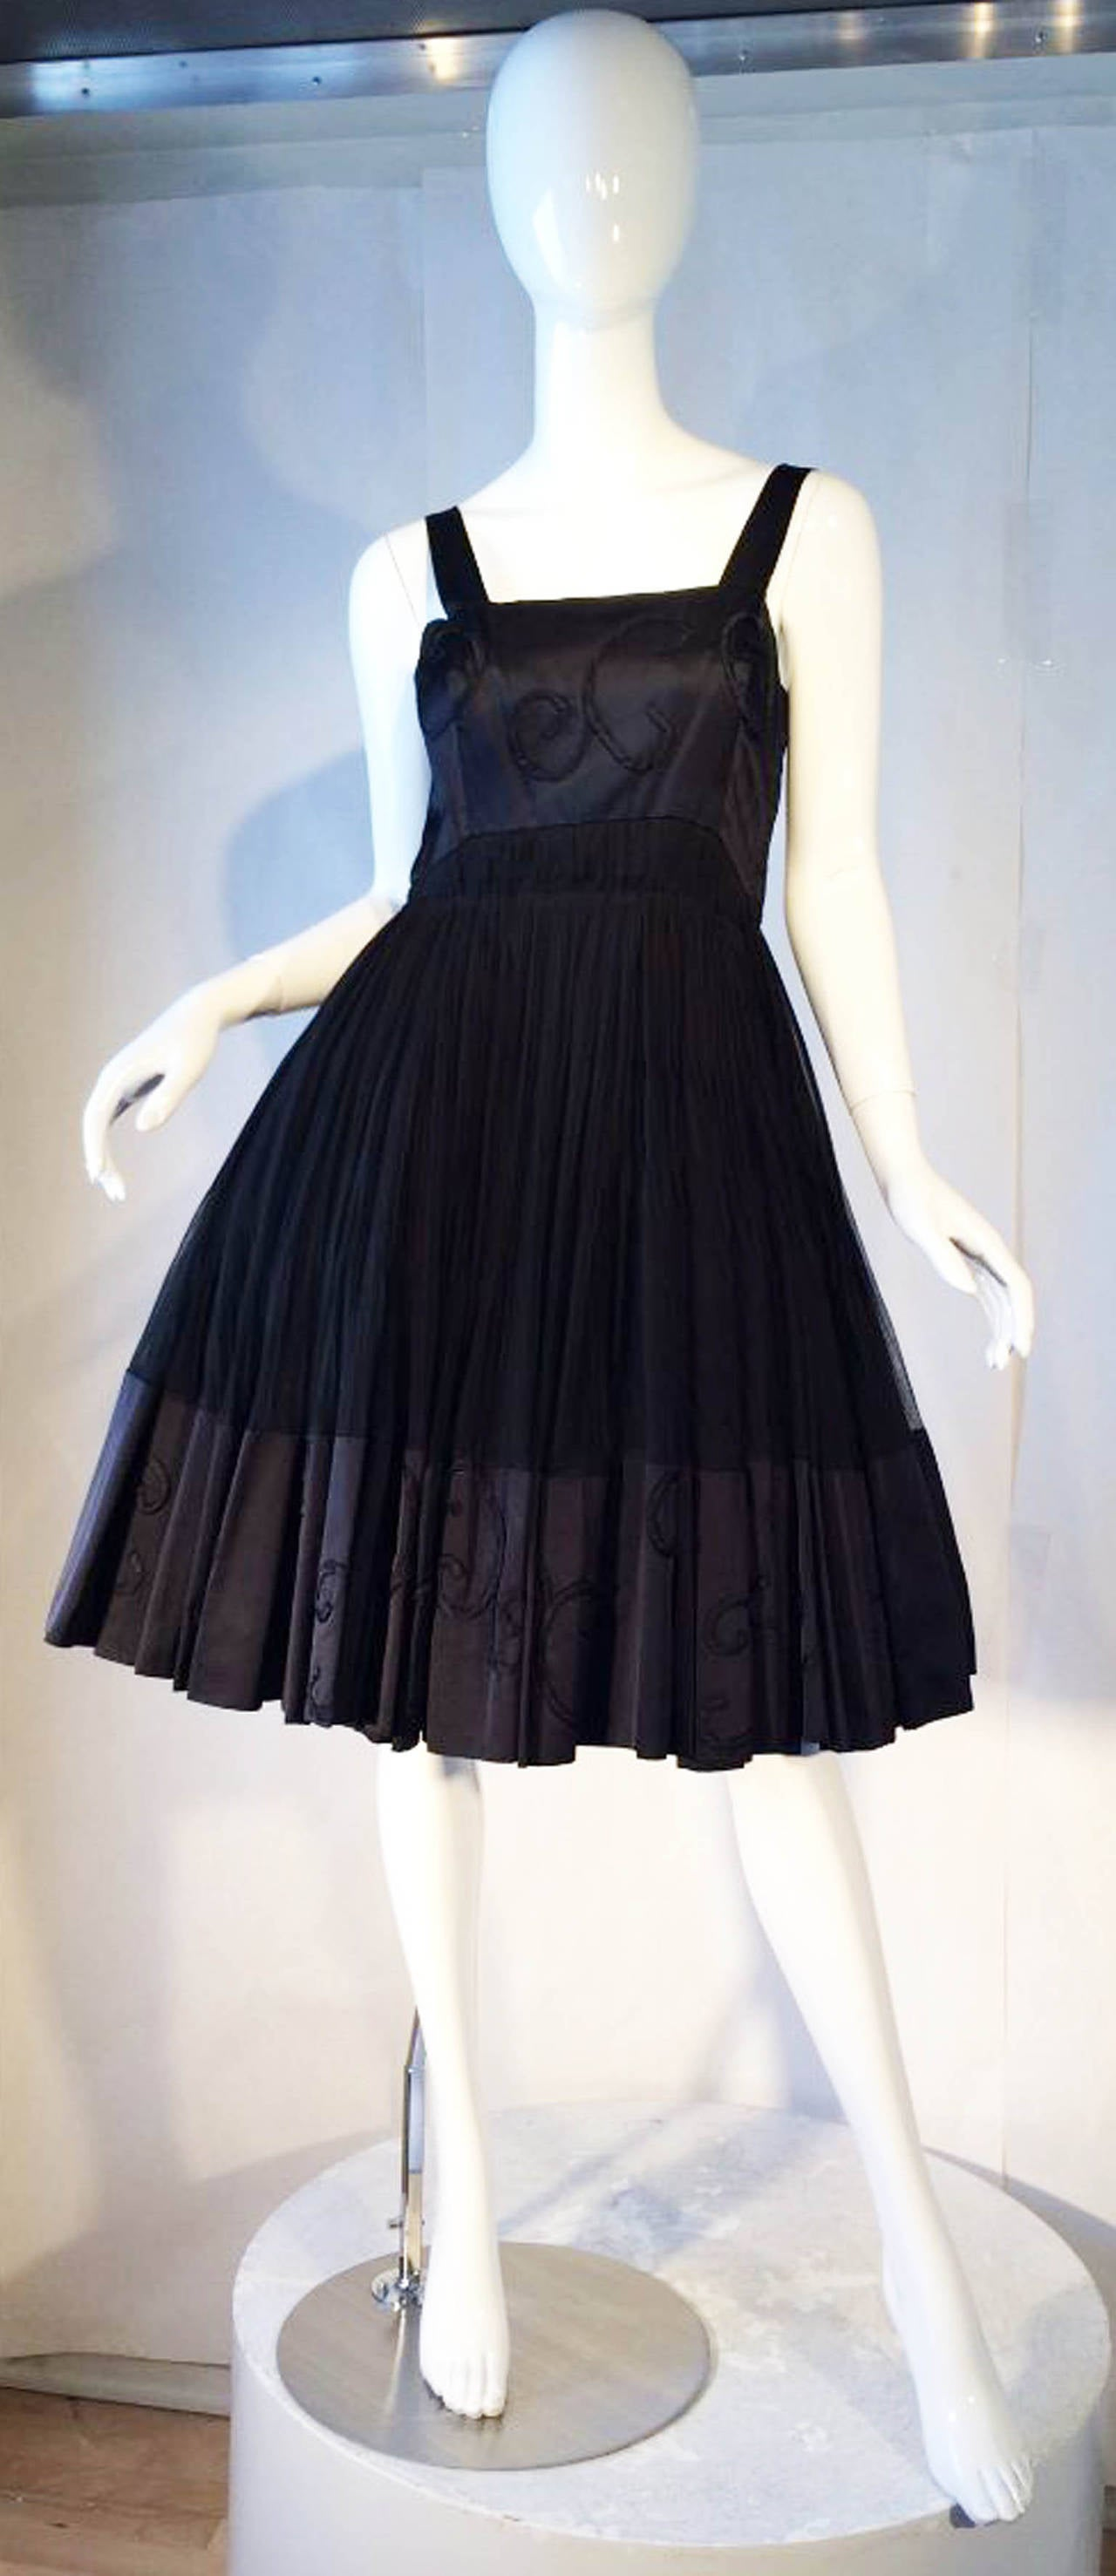 Jean patou haute couture cocktail dress at 1stdibs for Haute couture dress price